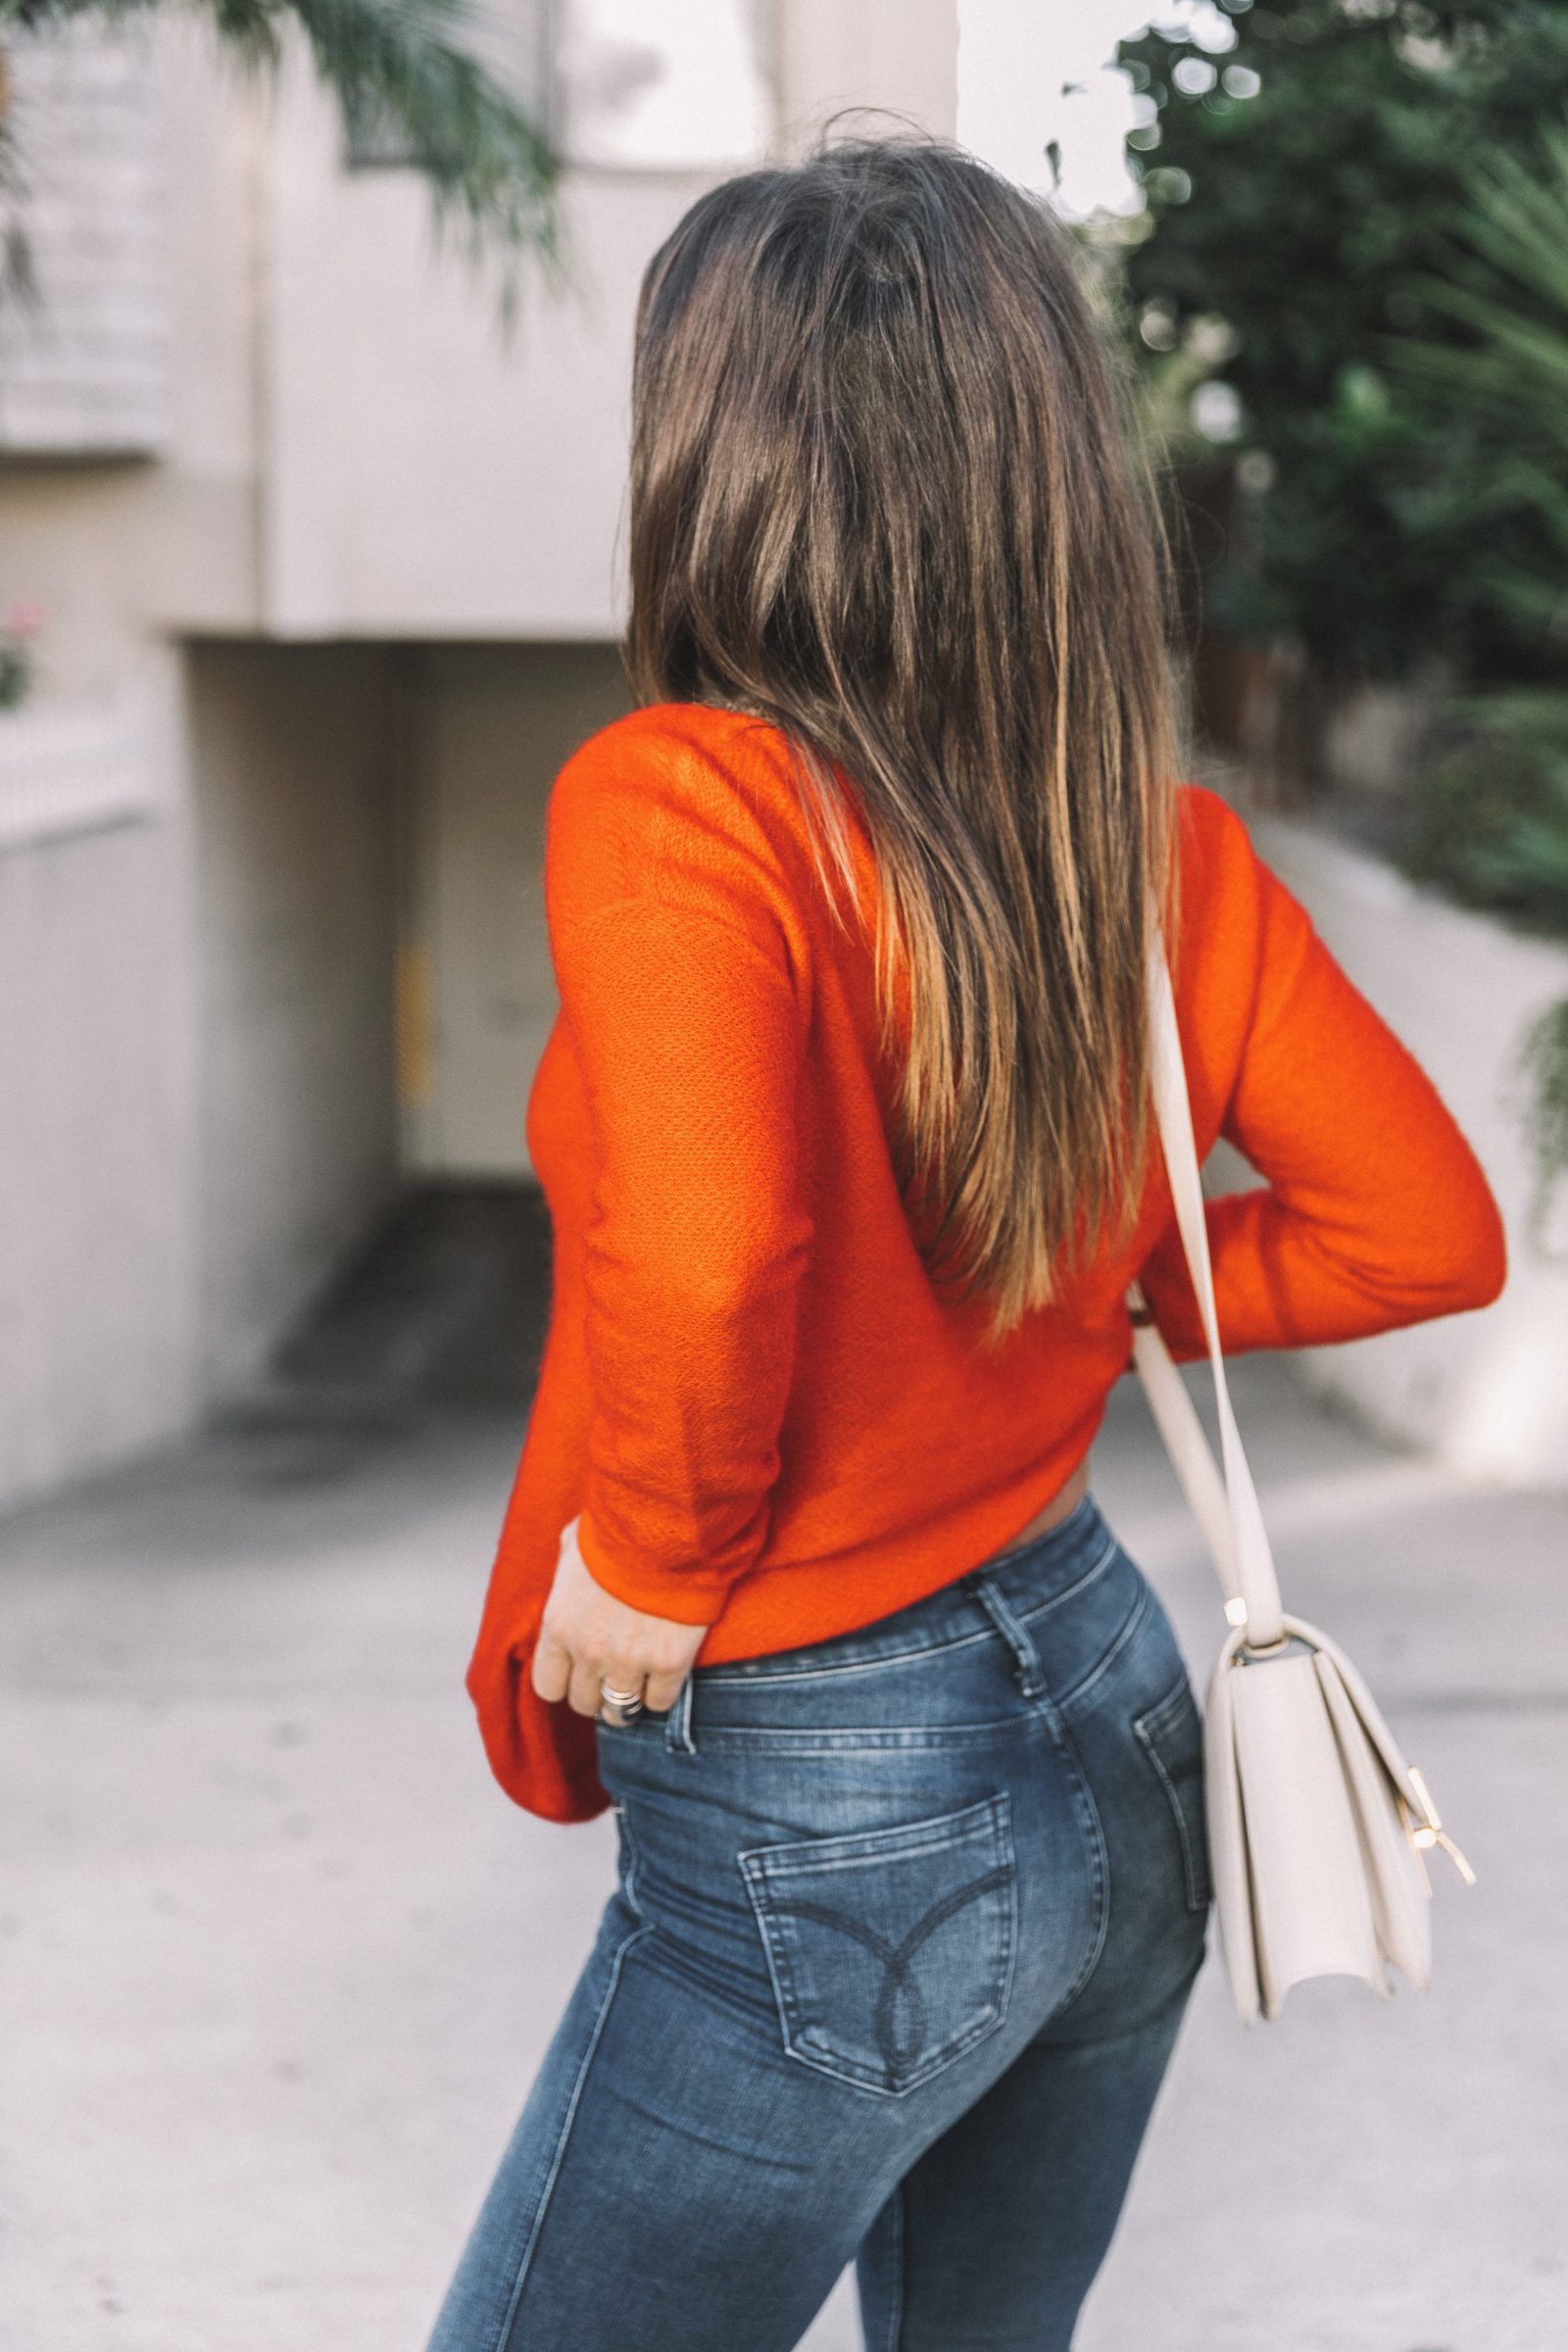 calvin_klein_outfit-ck_sculpted_jeans-denim-trench-orange_sweater-gold_shoes-celine_box_bag-outfit-street_style-los_angeles-collage_vintage-72